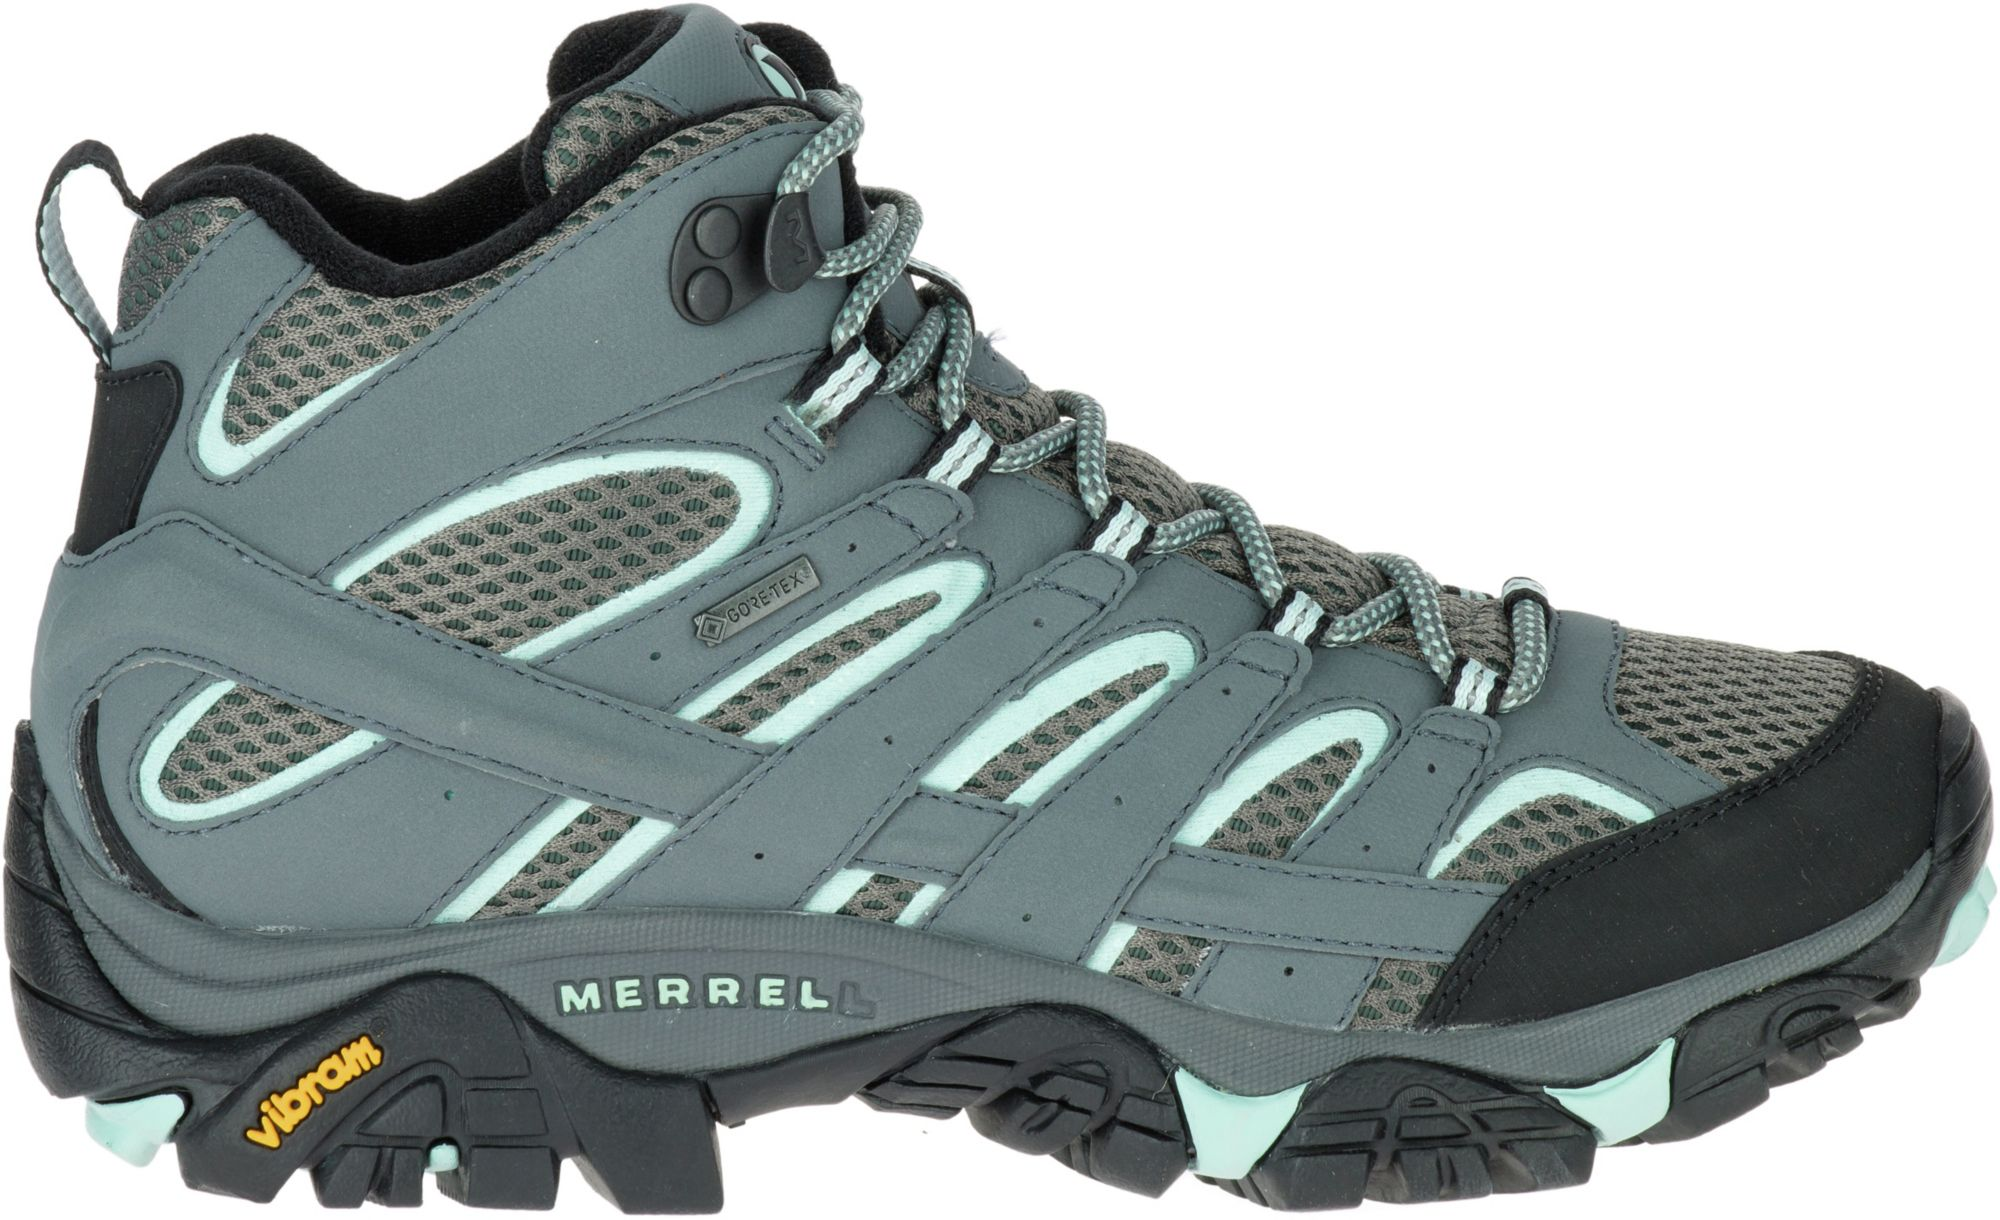 87521019a050 Merrell Women s Moab 2 Mid GORE-TEX Hiking Boots